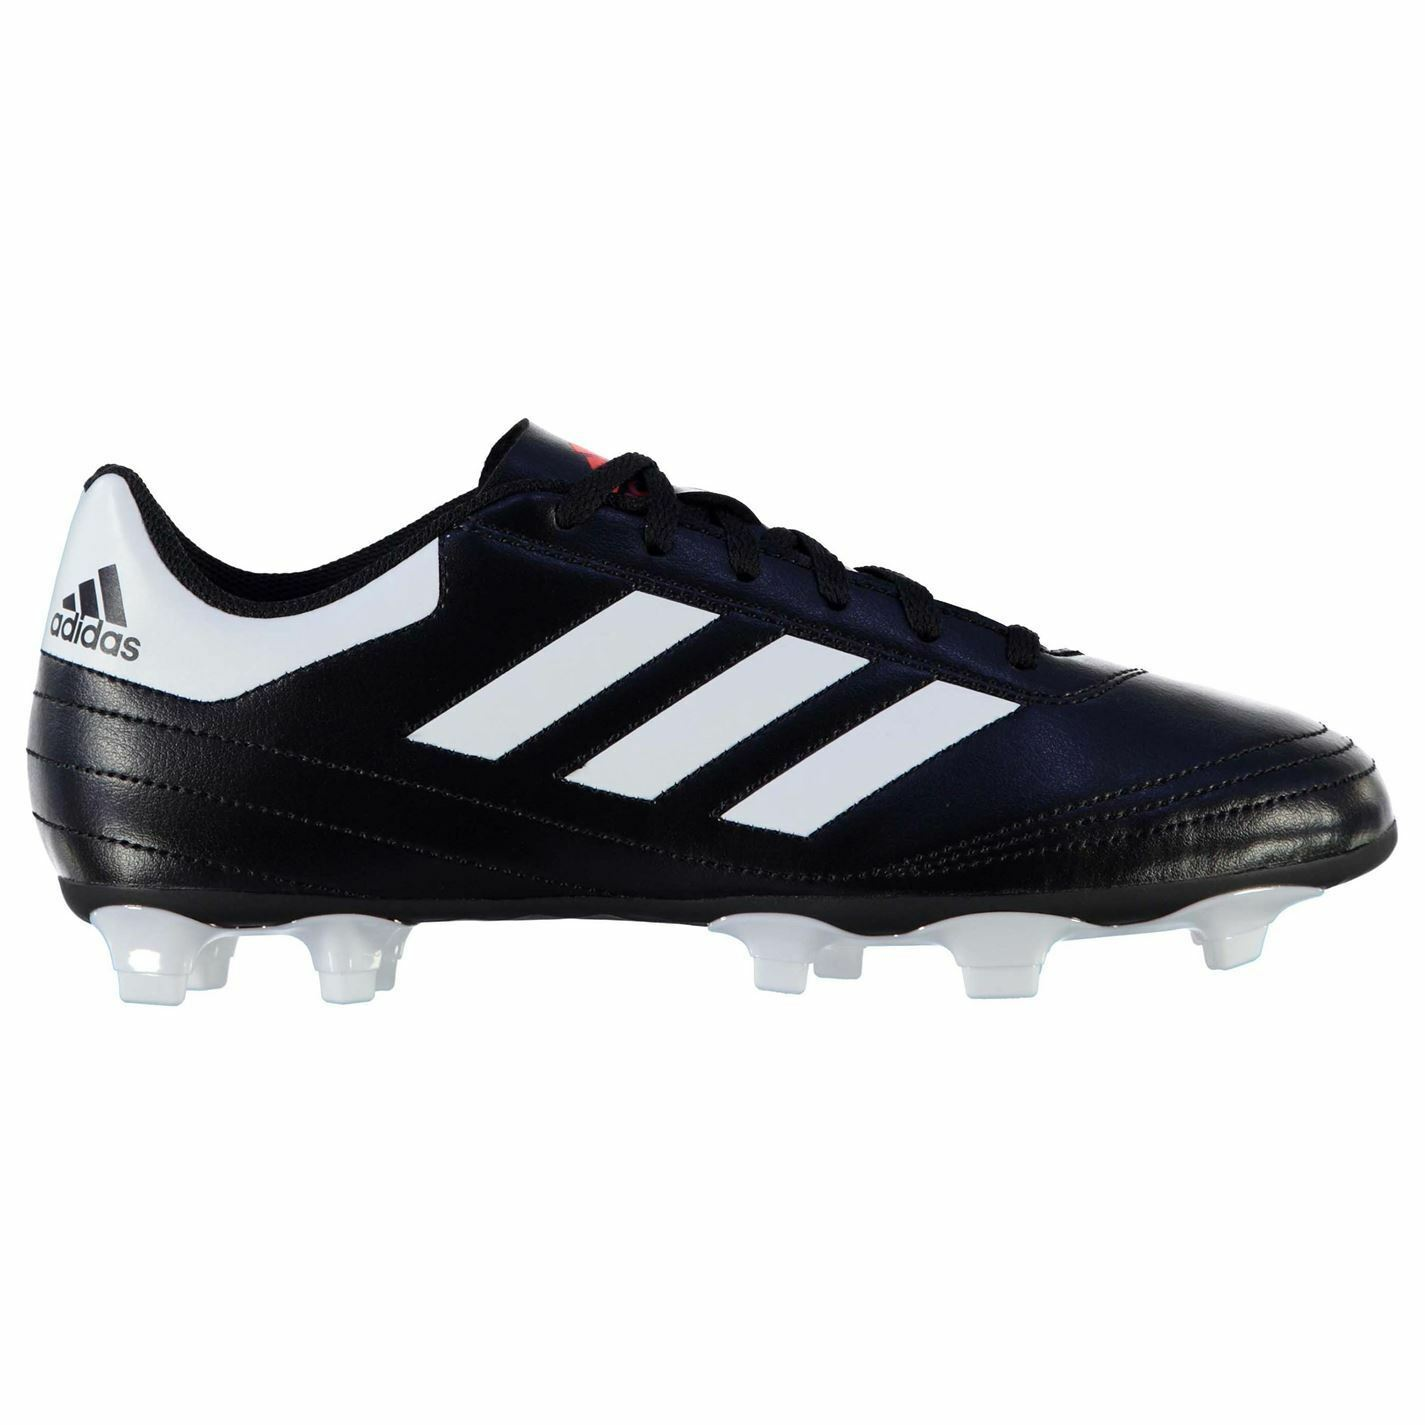 Adidas Goletto FG Firm Ground Football Boots Mens Blk Wht Soccer Cleats shoes